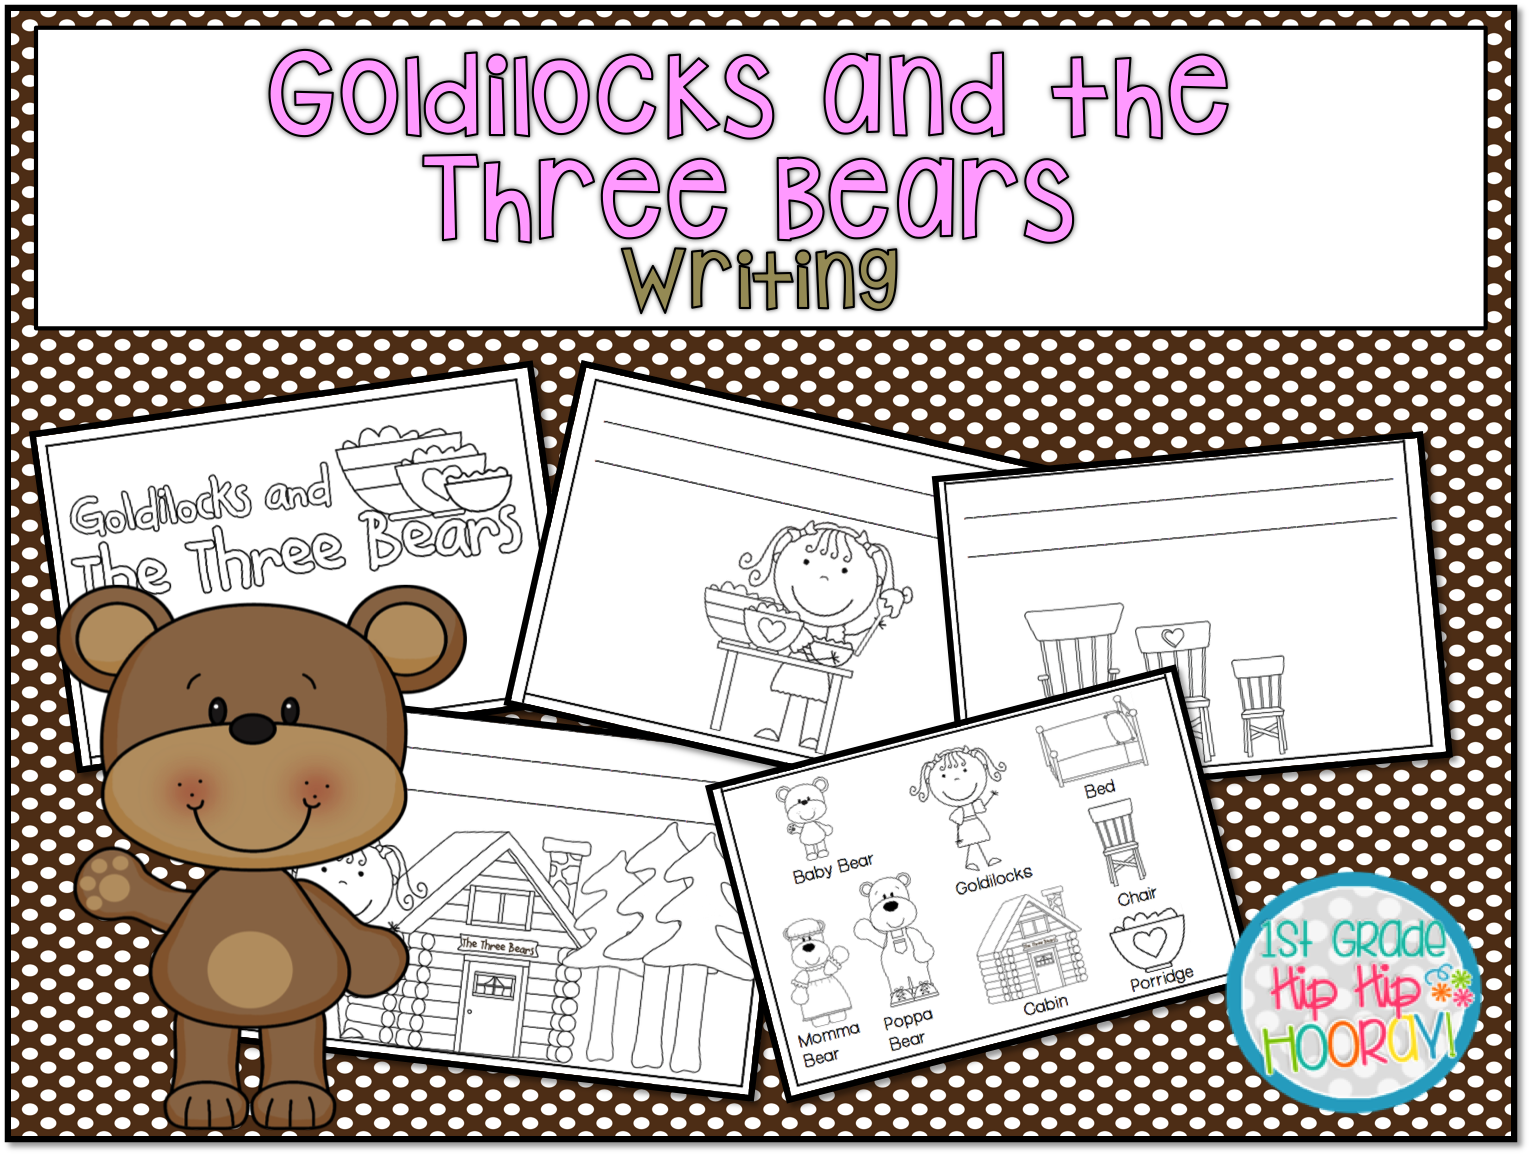 1st Grade Hip Hip Hooray Goldilocks And The Three Bears